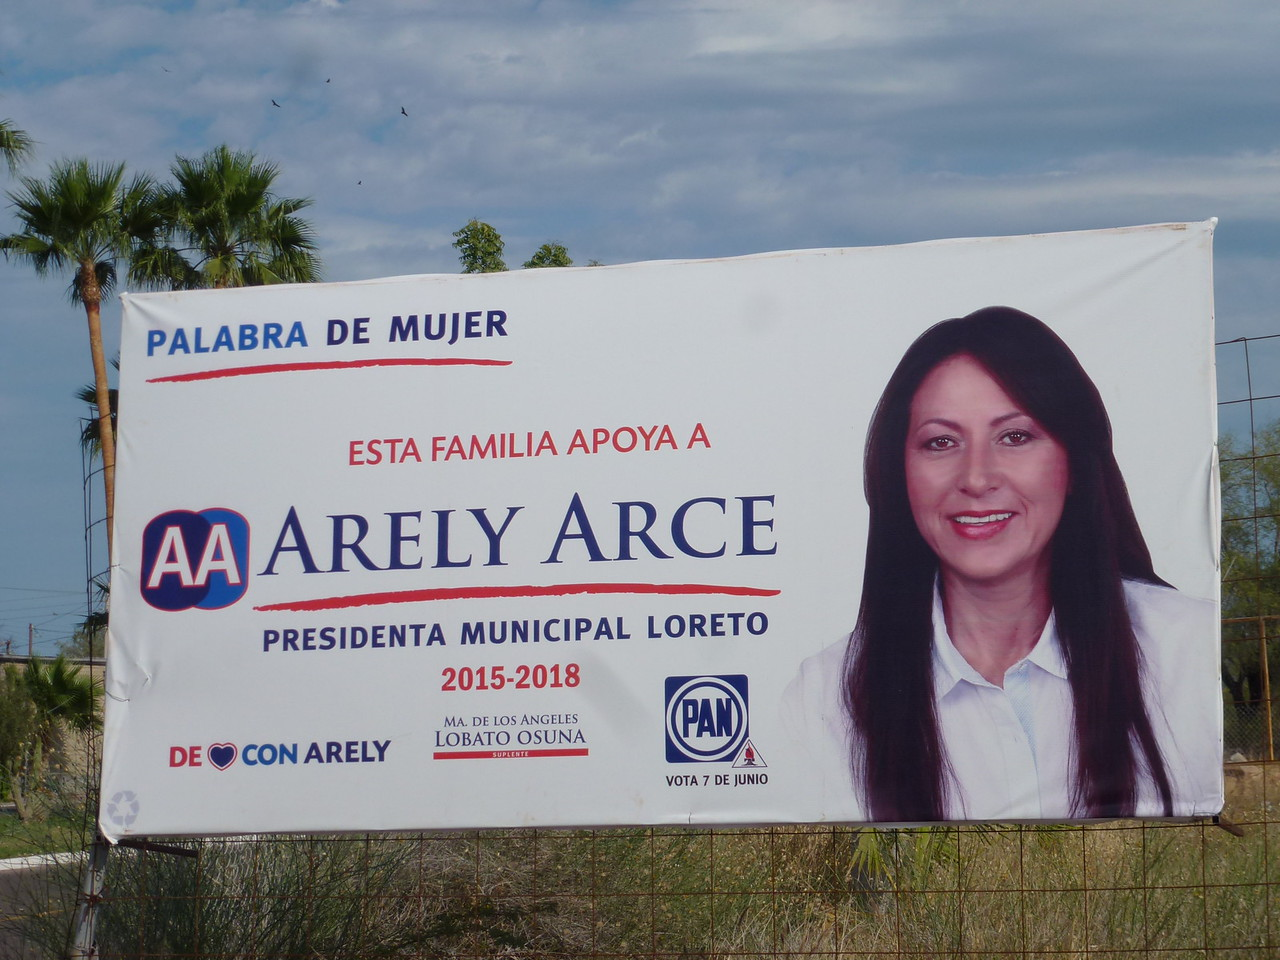 Election was June 7 <br /> <br /> About 500 hundred of these signs were plastered all over the town of Loreto <br /> <br /> I asked ---her name is pronounced  ( a really  air cee  )